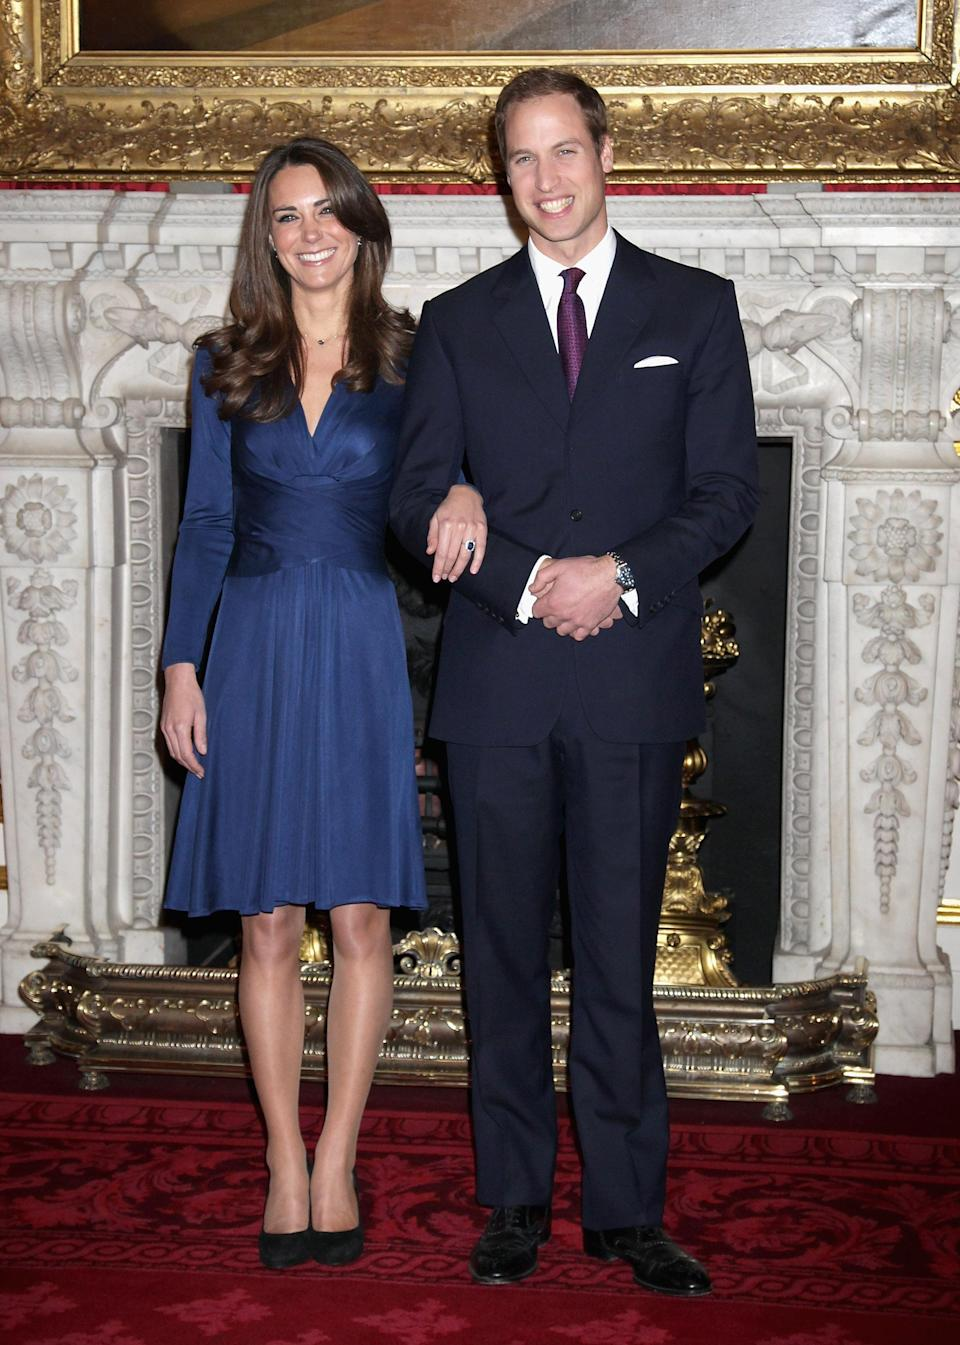 <p>On November 16, 2010 the Duke and Duchess of Cambridge announced their engagement to the world. For the couple's photocall, Kate opted for a suitably royal blue dress by Issa. <em>[Photo: Getty]</em> </p>